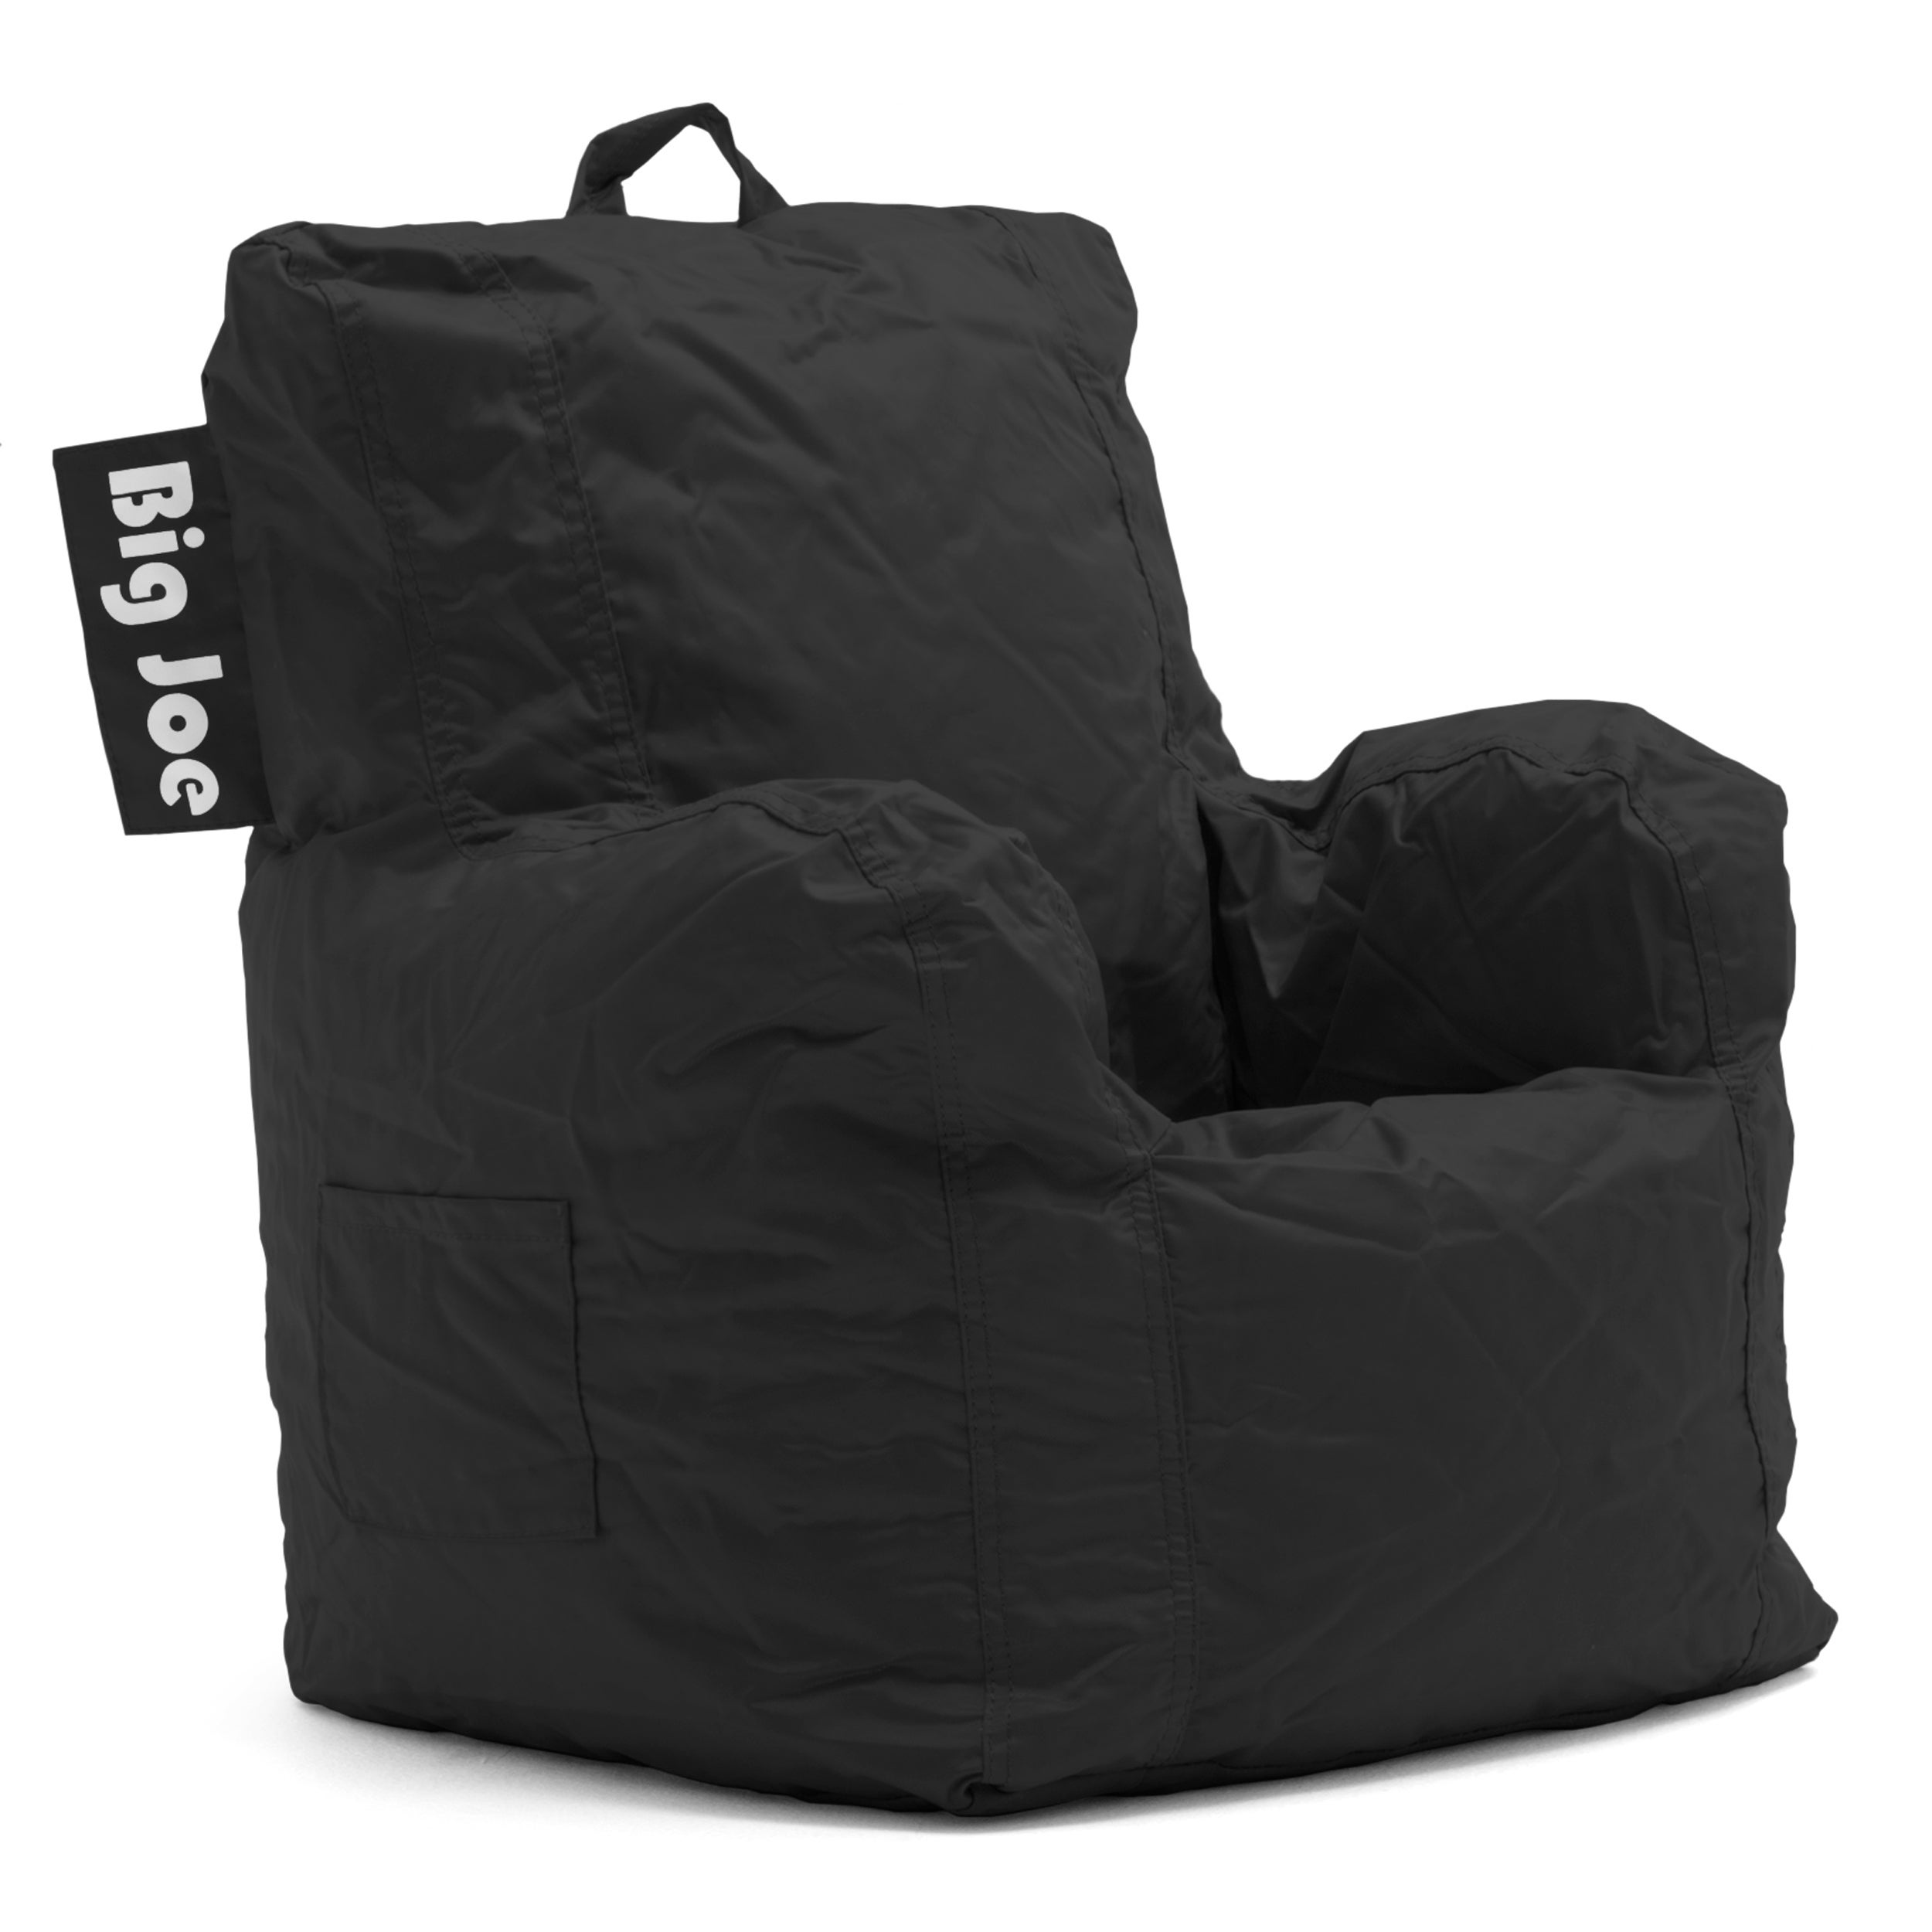 Superieur Shop Big Joe Kidu0027s Cuddle Bean Bag Chair   Free Shipping Today    Overstock.com   19759201